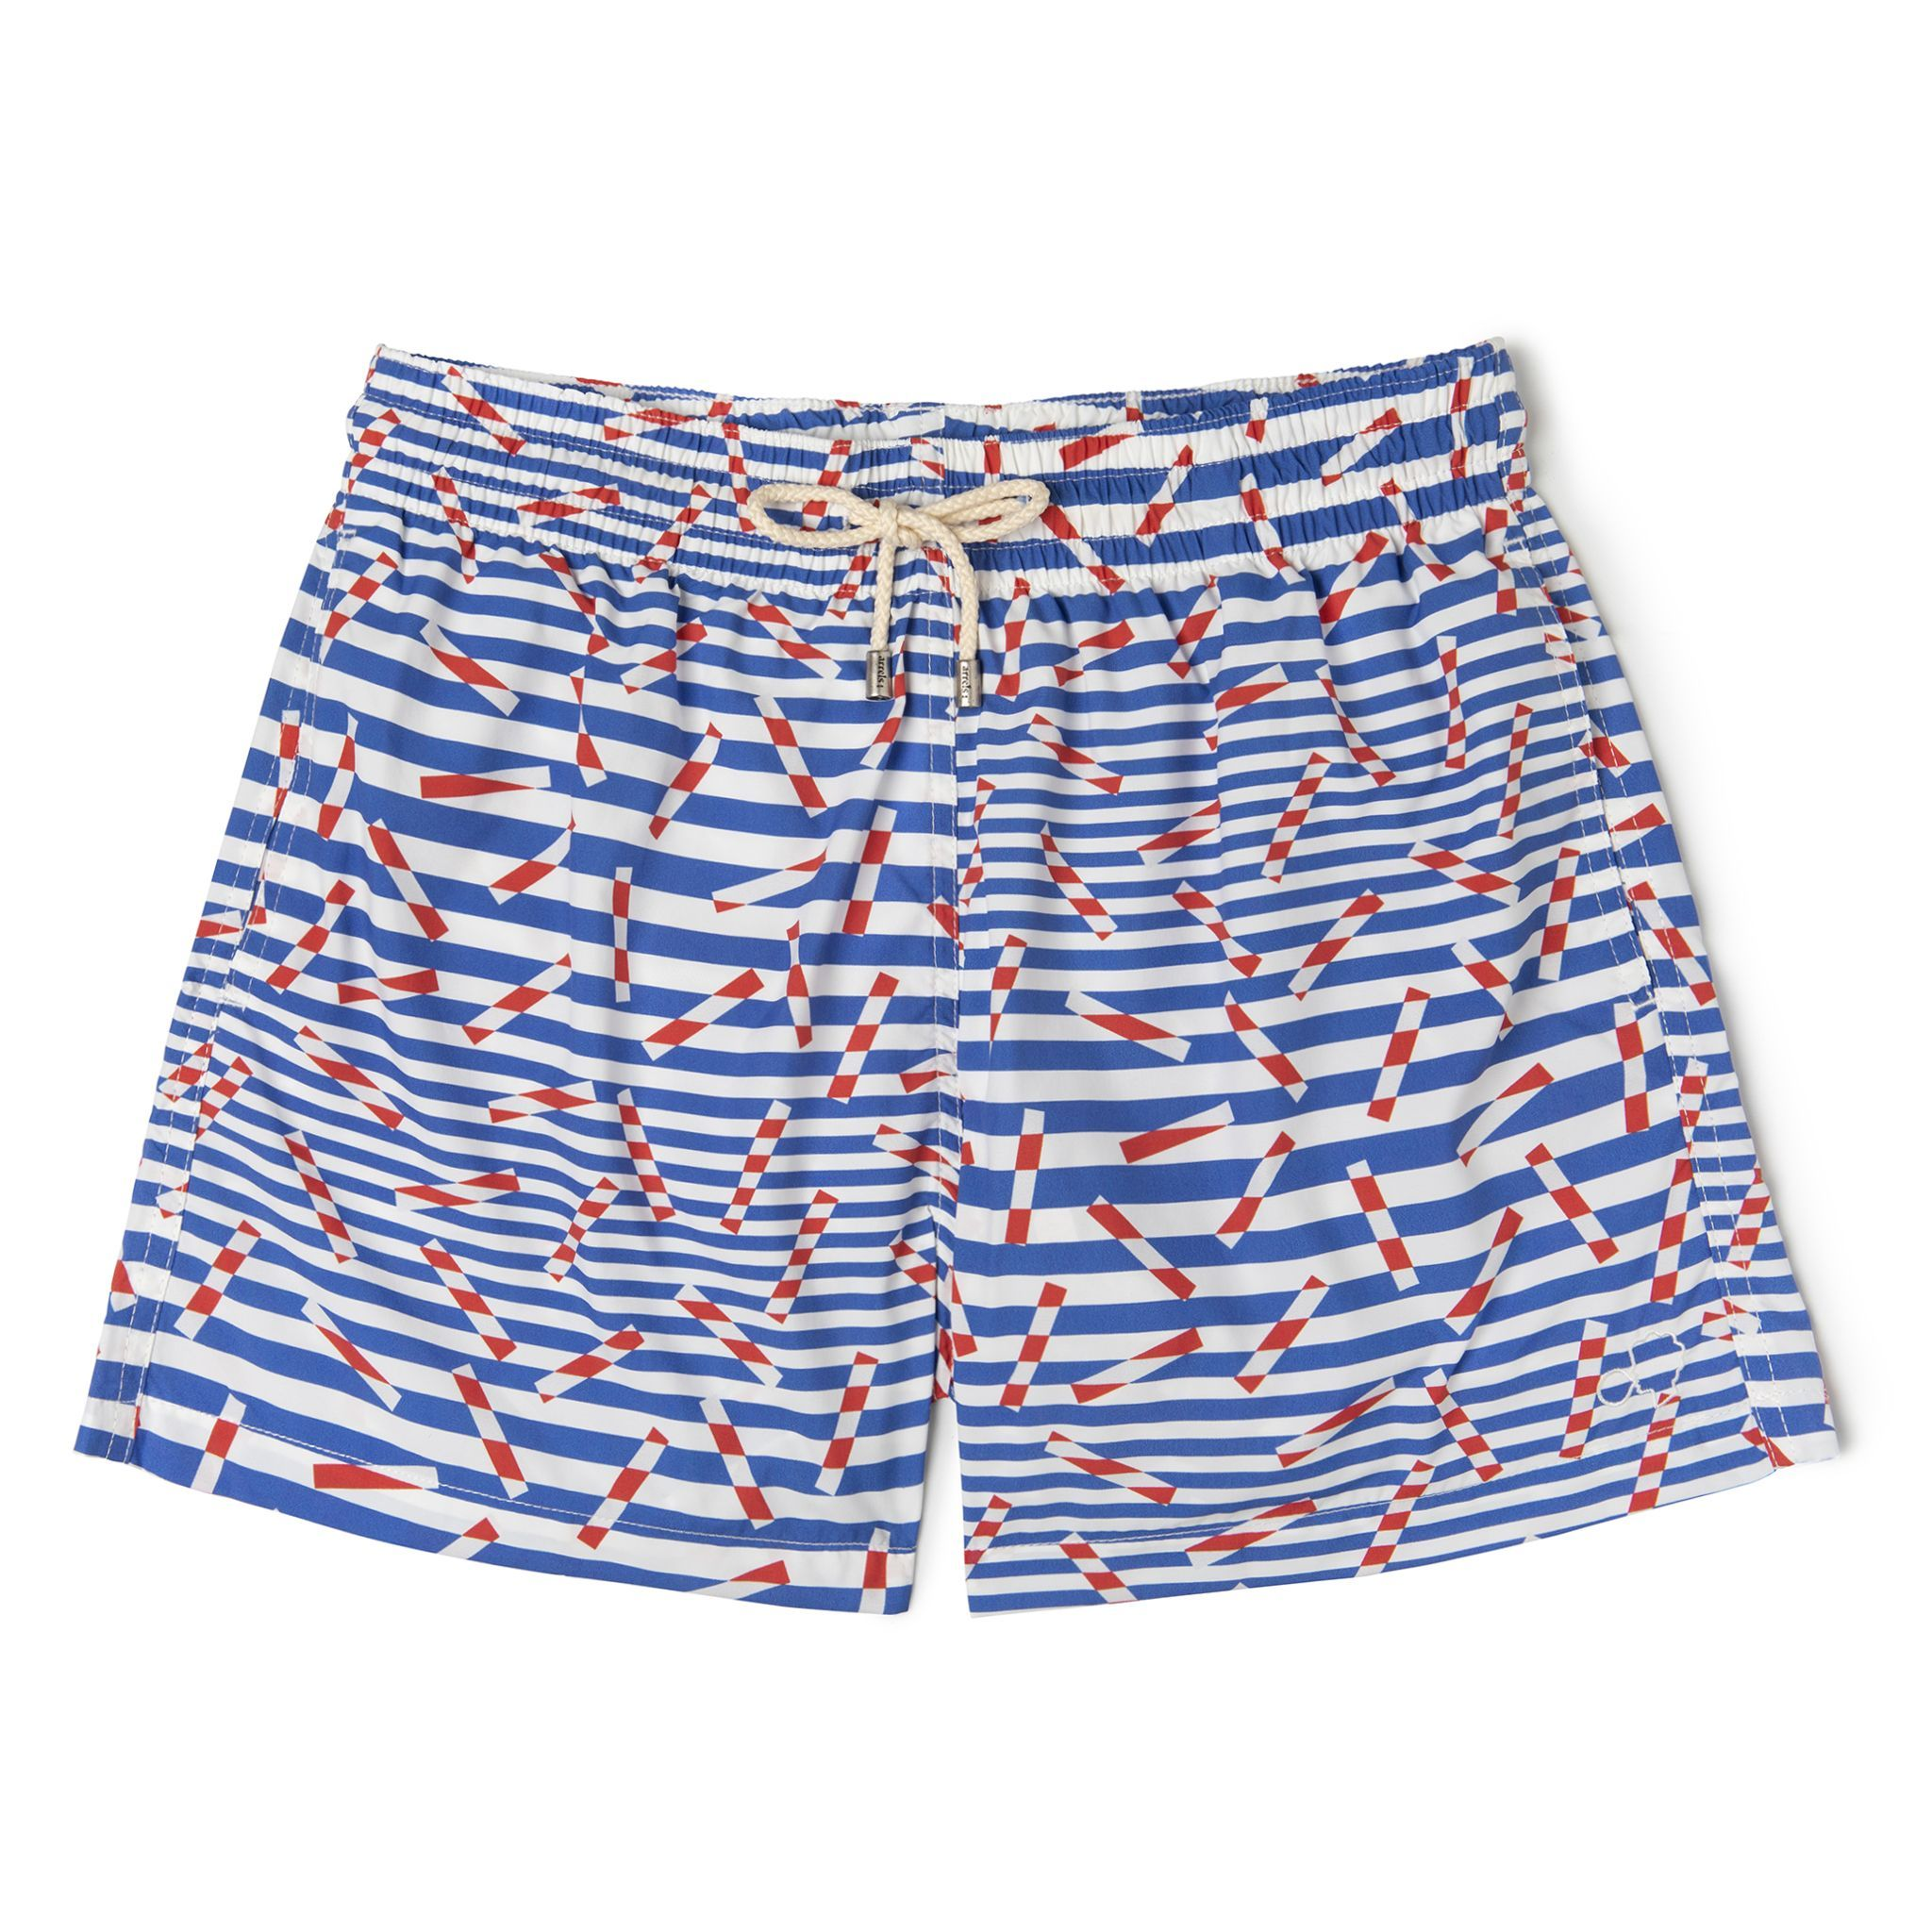 Short-Length Swim Shorts Bluesticks